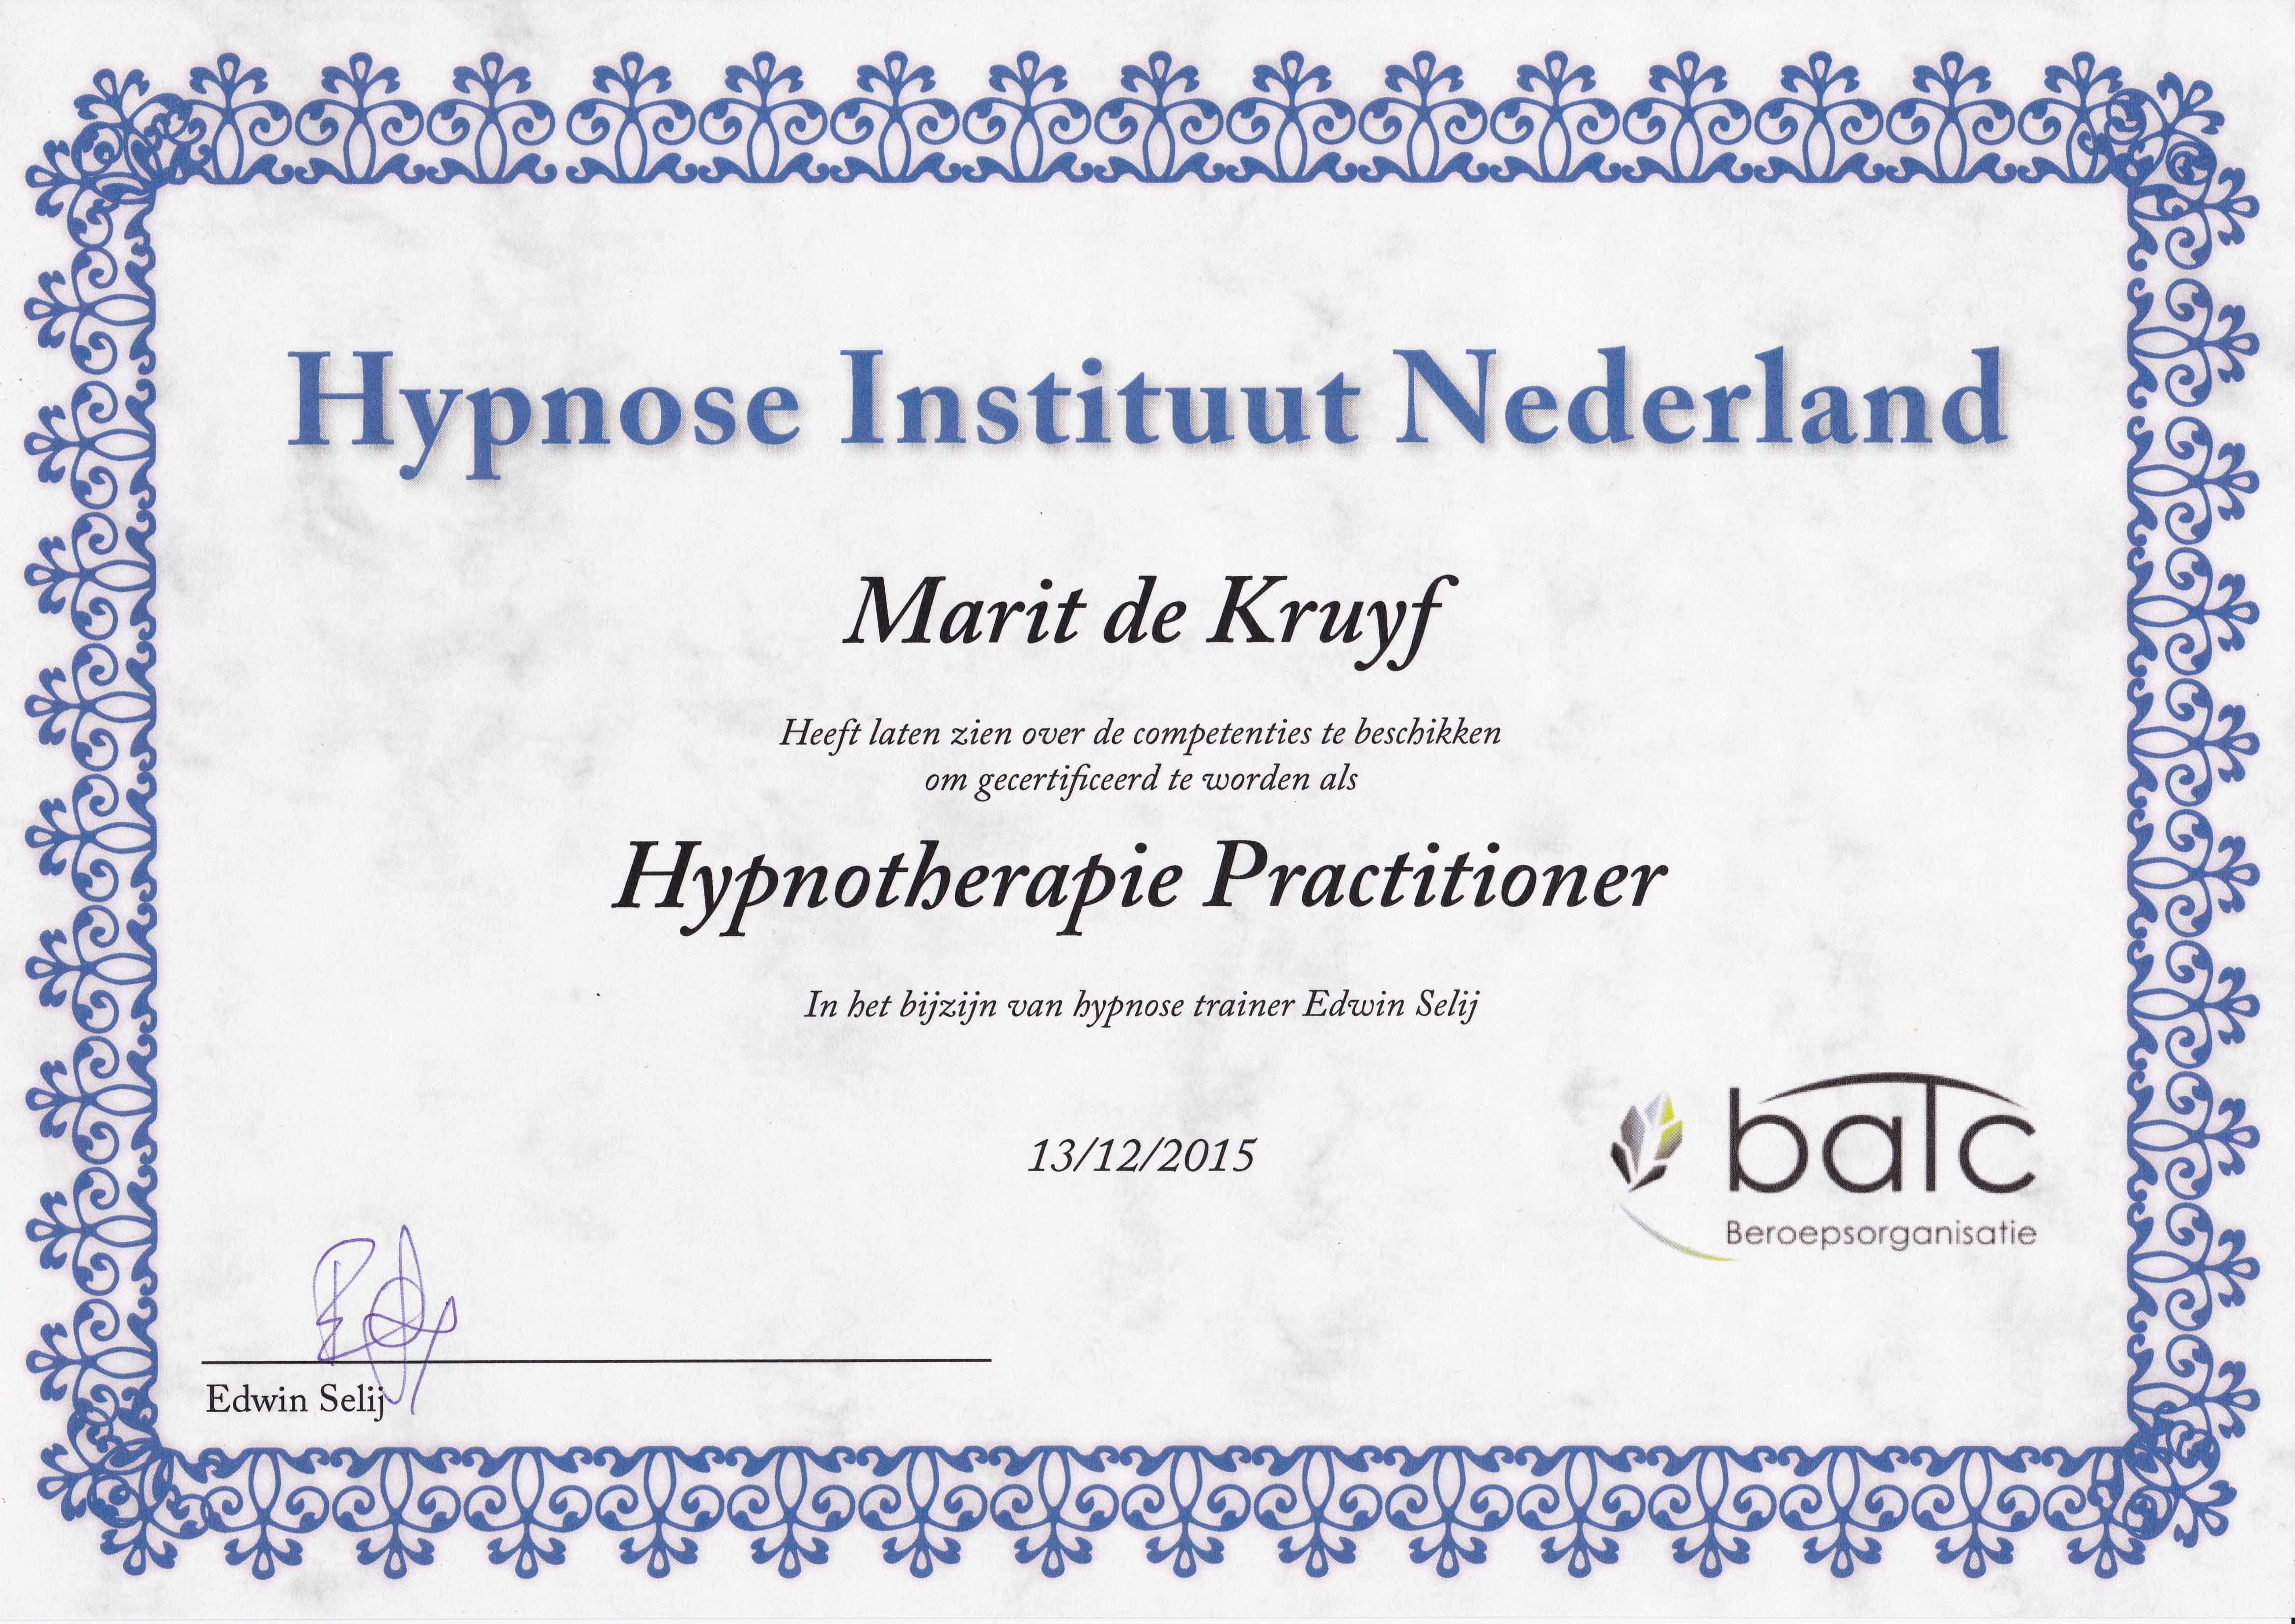 Diploma - Hypnotherapie Practitioner